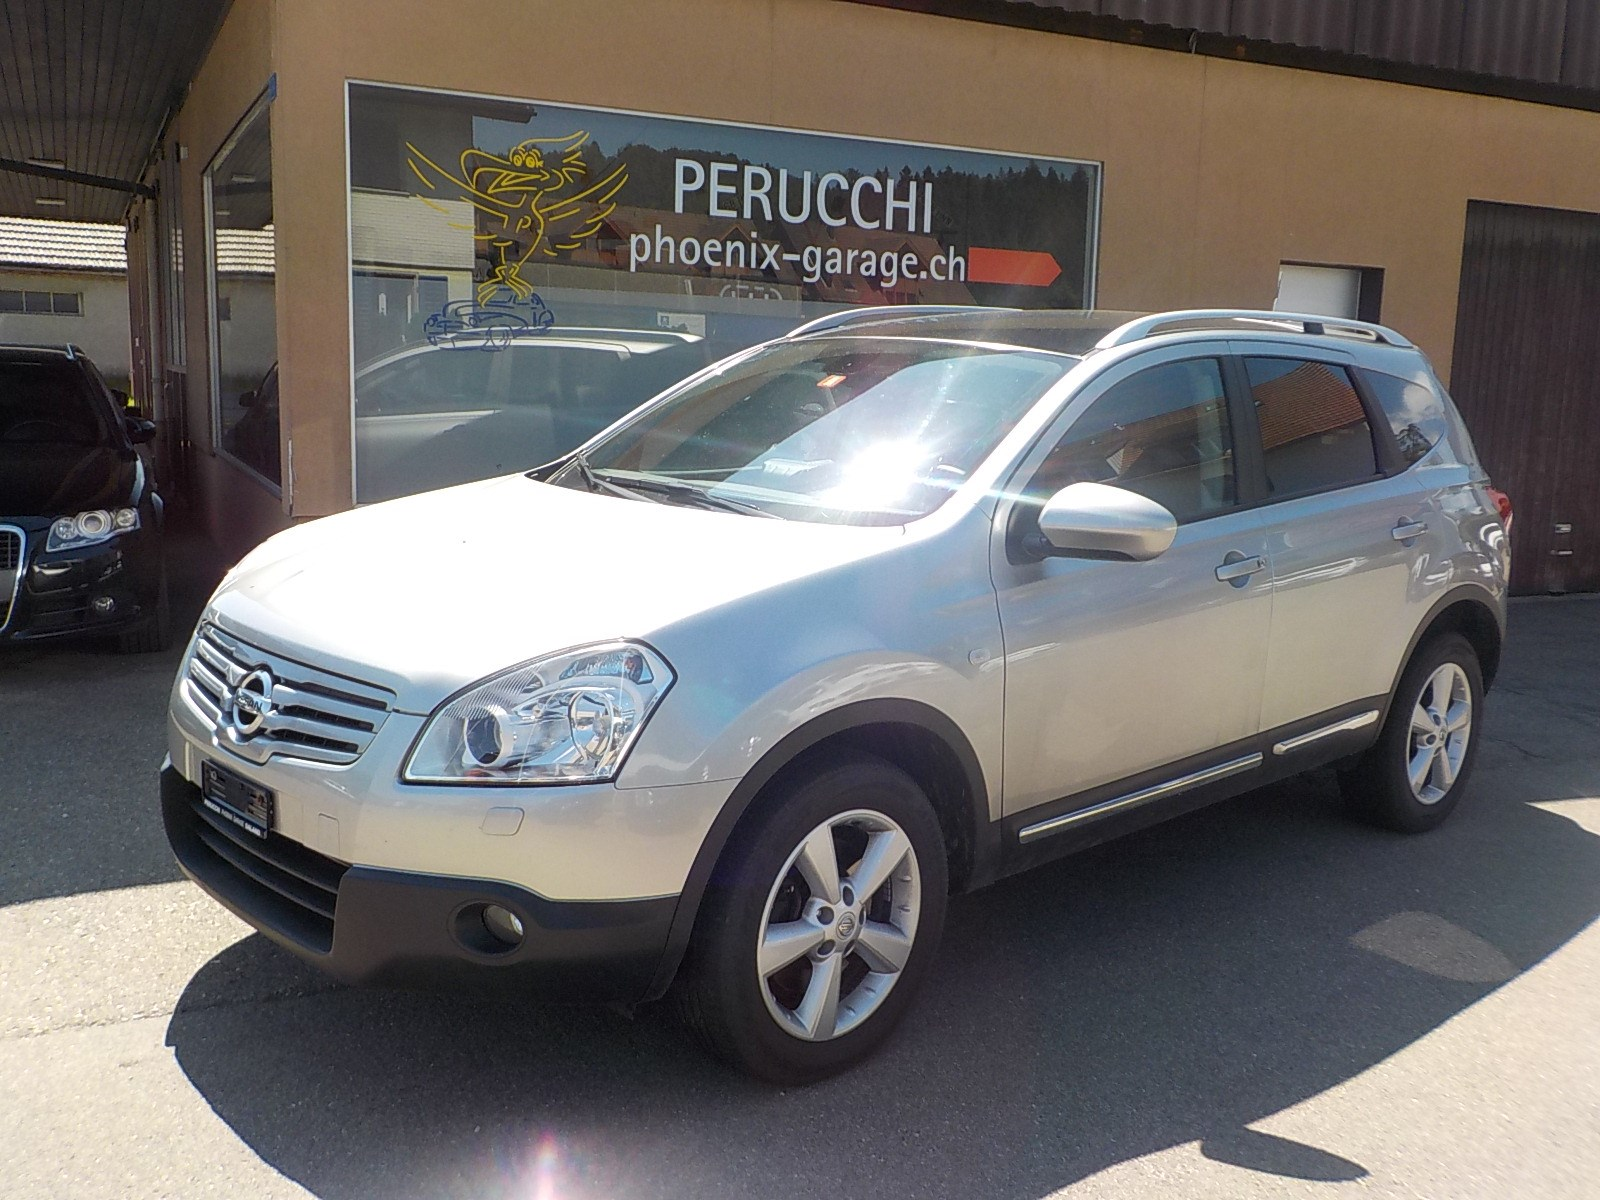 Buy Used Car Suv Nissan Qashqai 2 2 0 Dci 4wd Acenta Automatic 138900 Km At 8500 Chf On Carforyou Ch